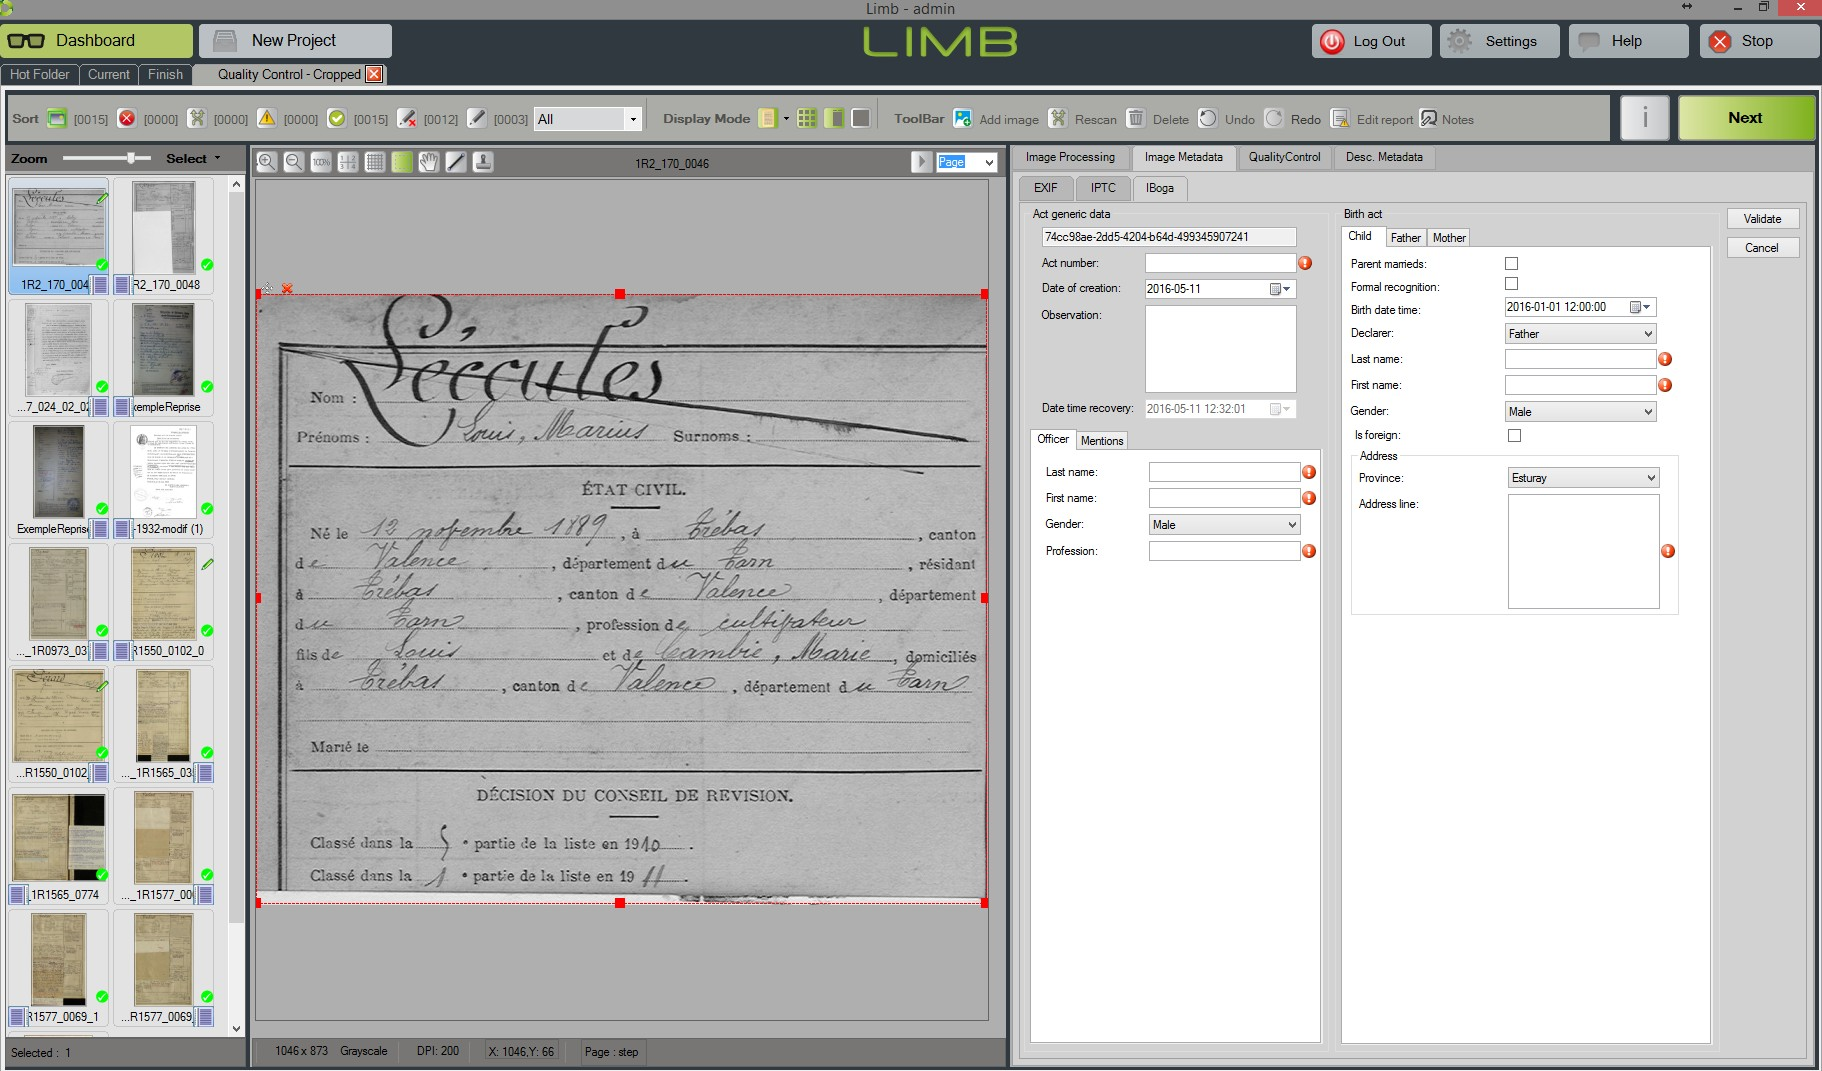 Image manager LIMB Processing